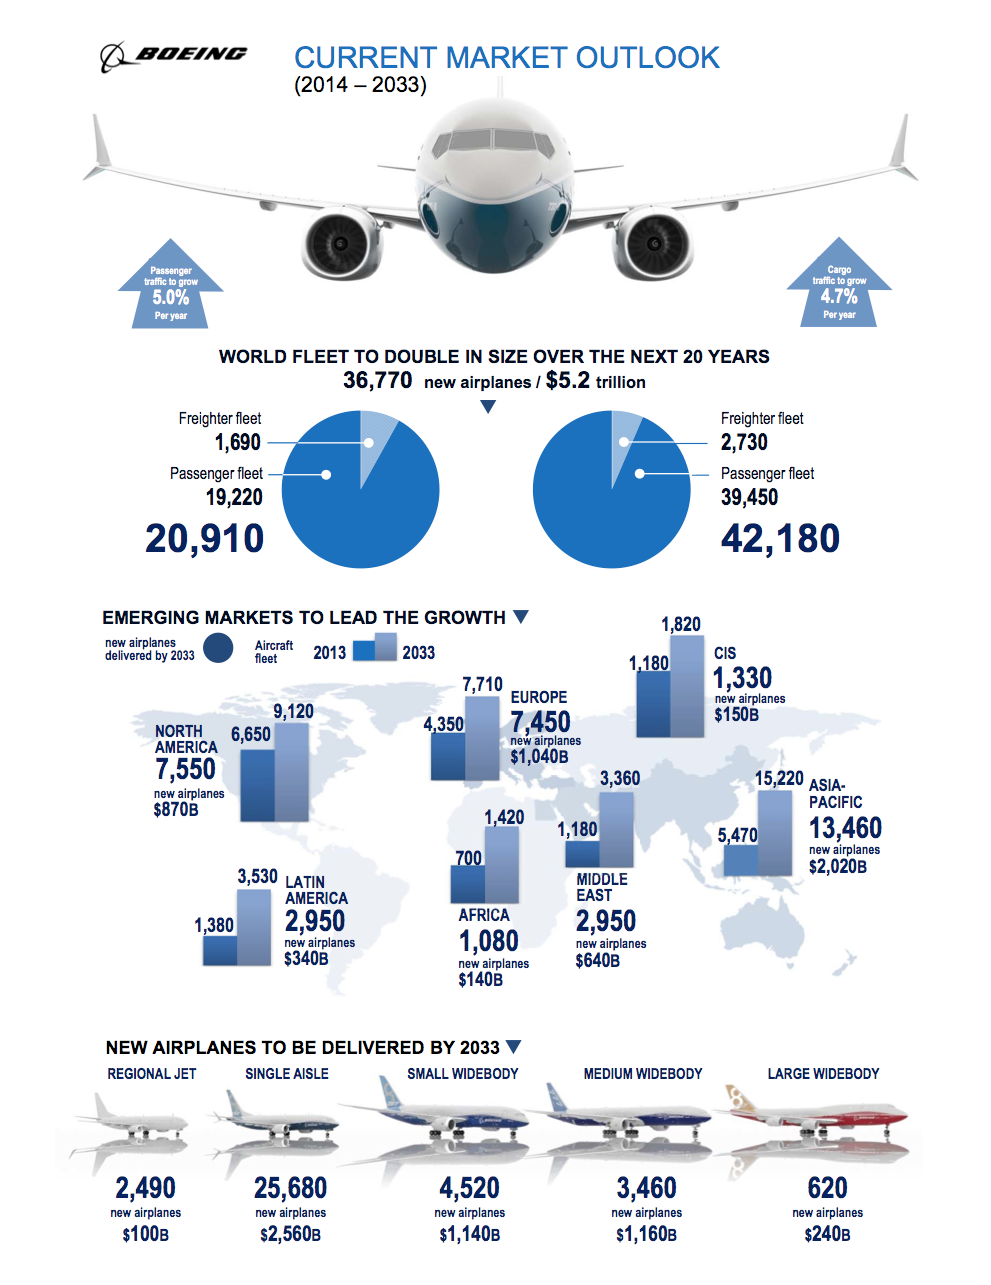 boeing-future-outlook-2014.png